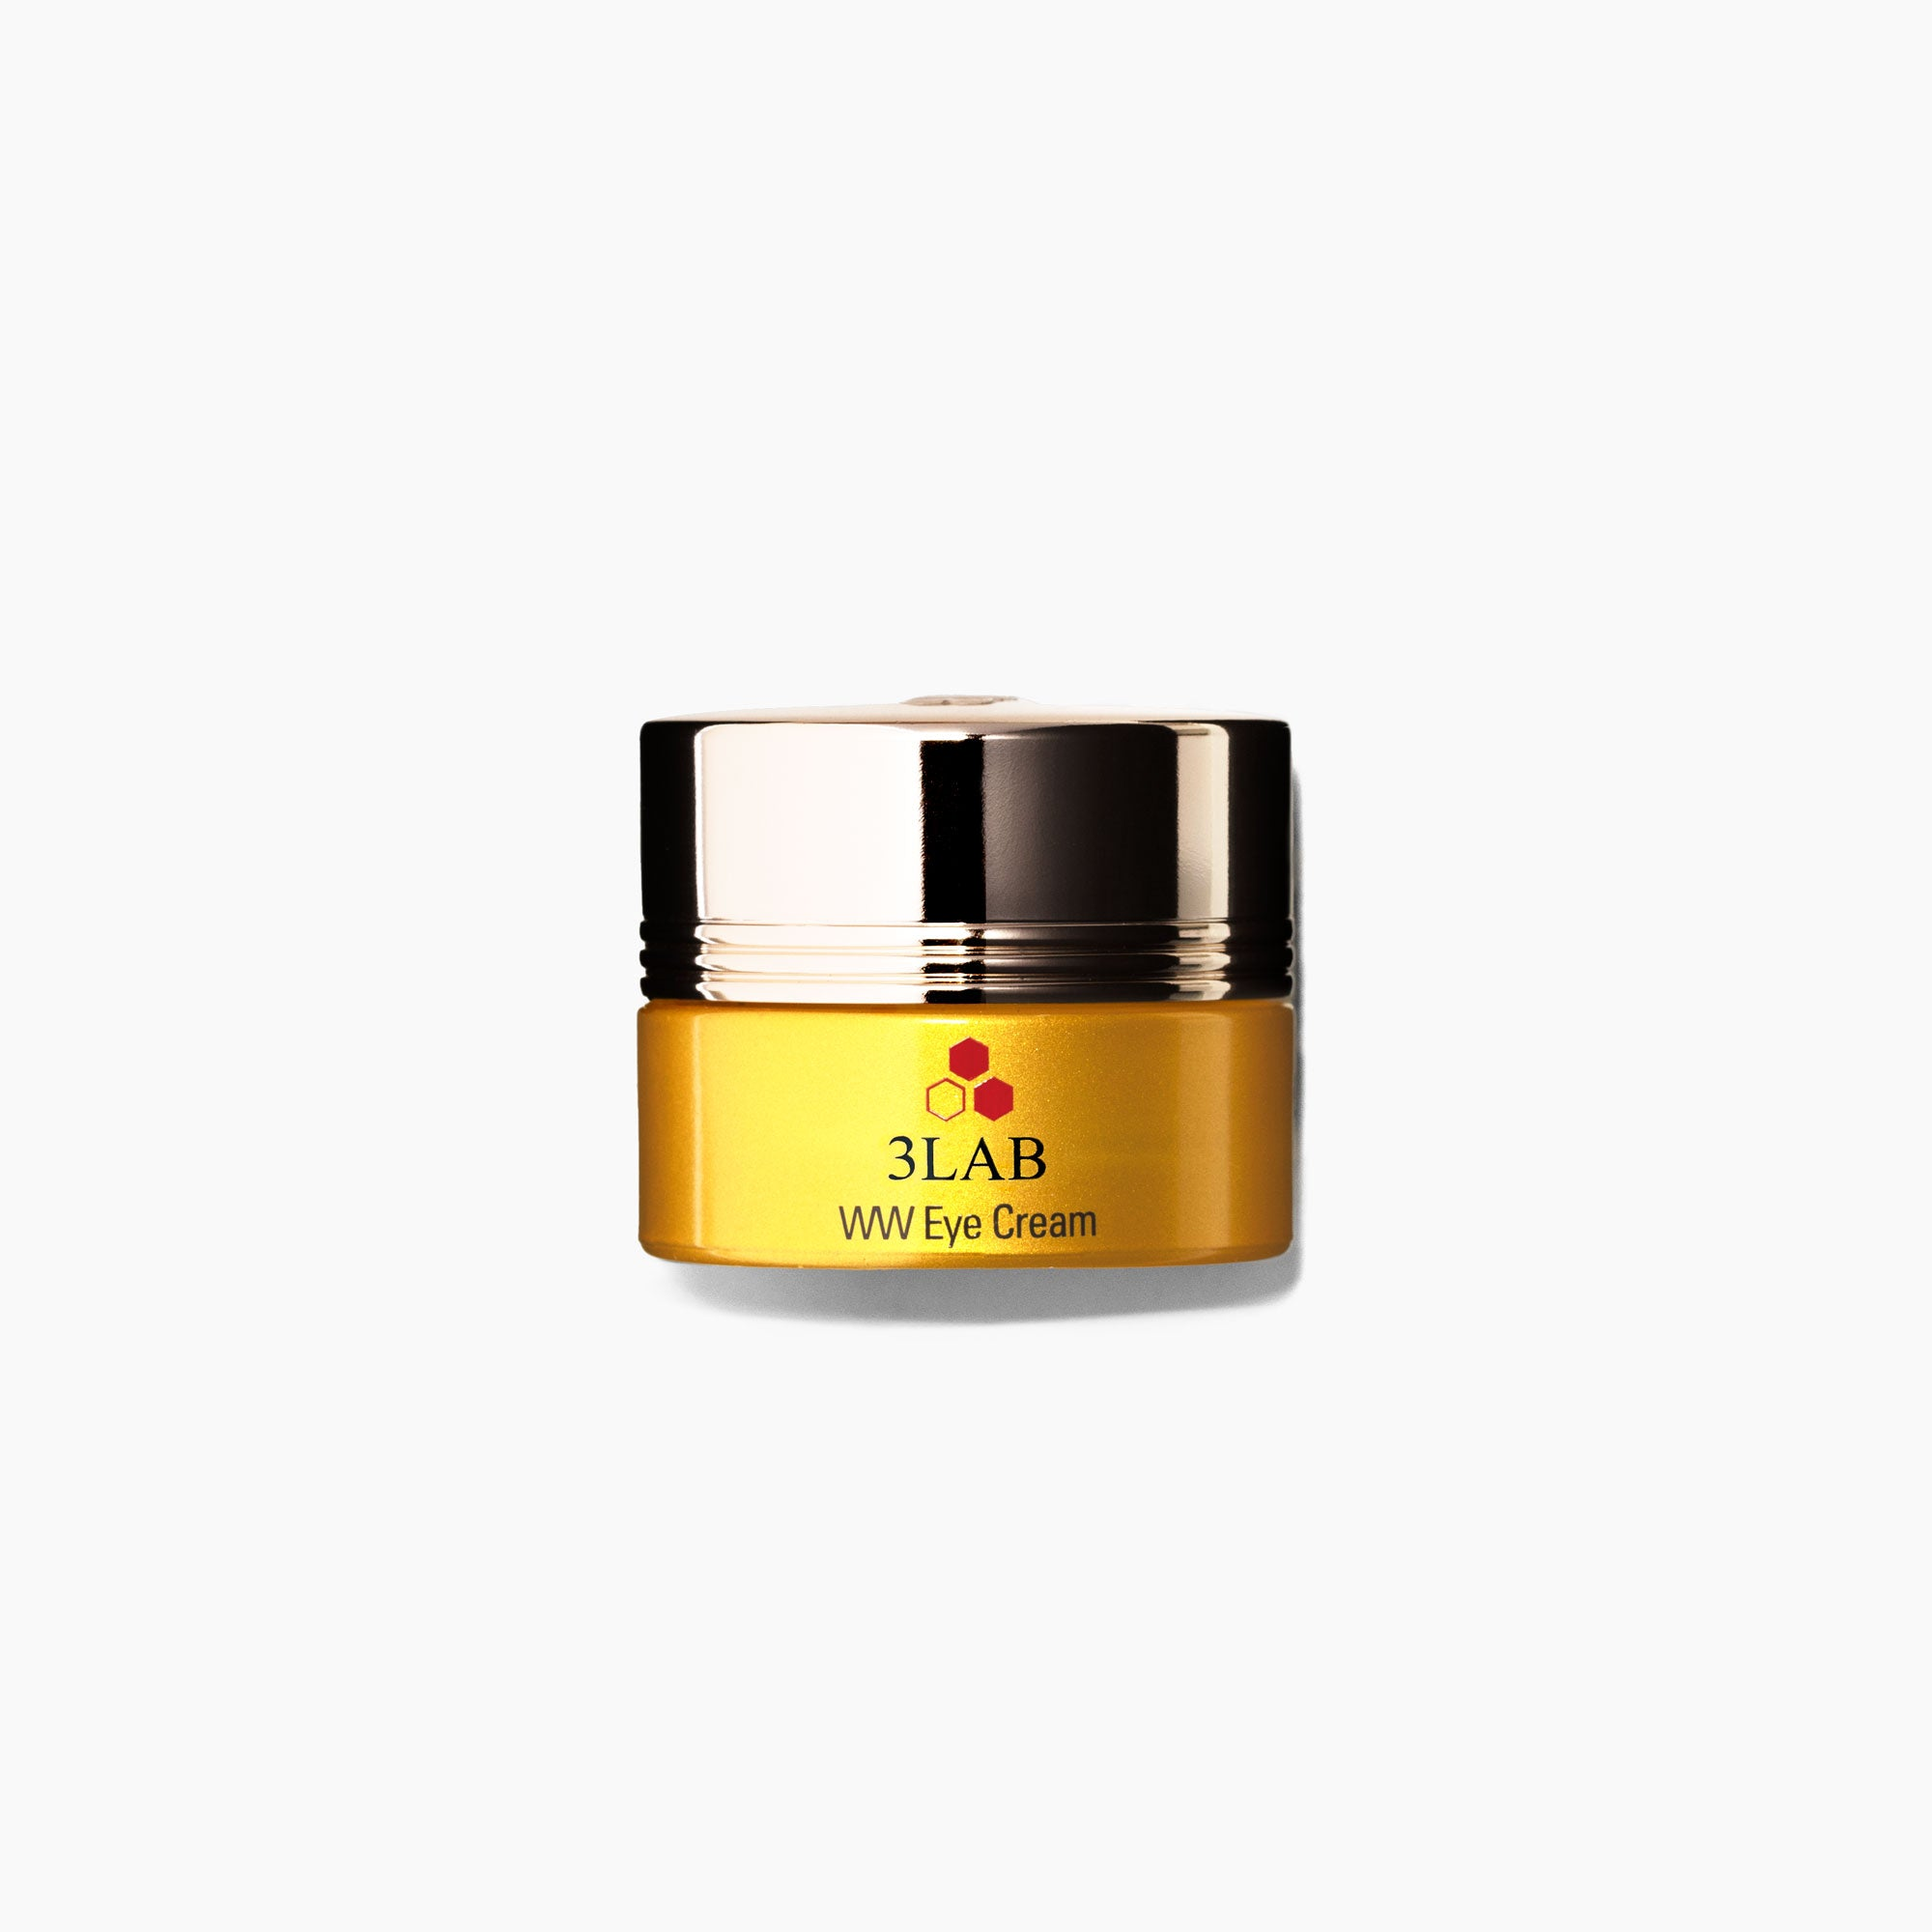 WW Eye Cream